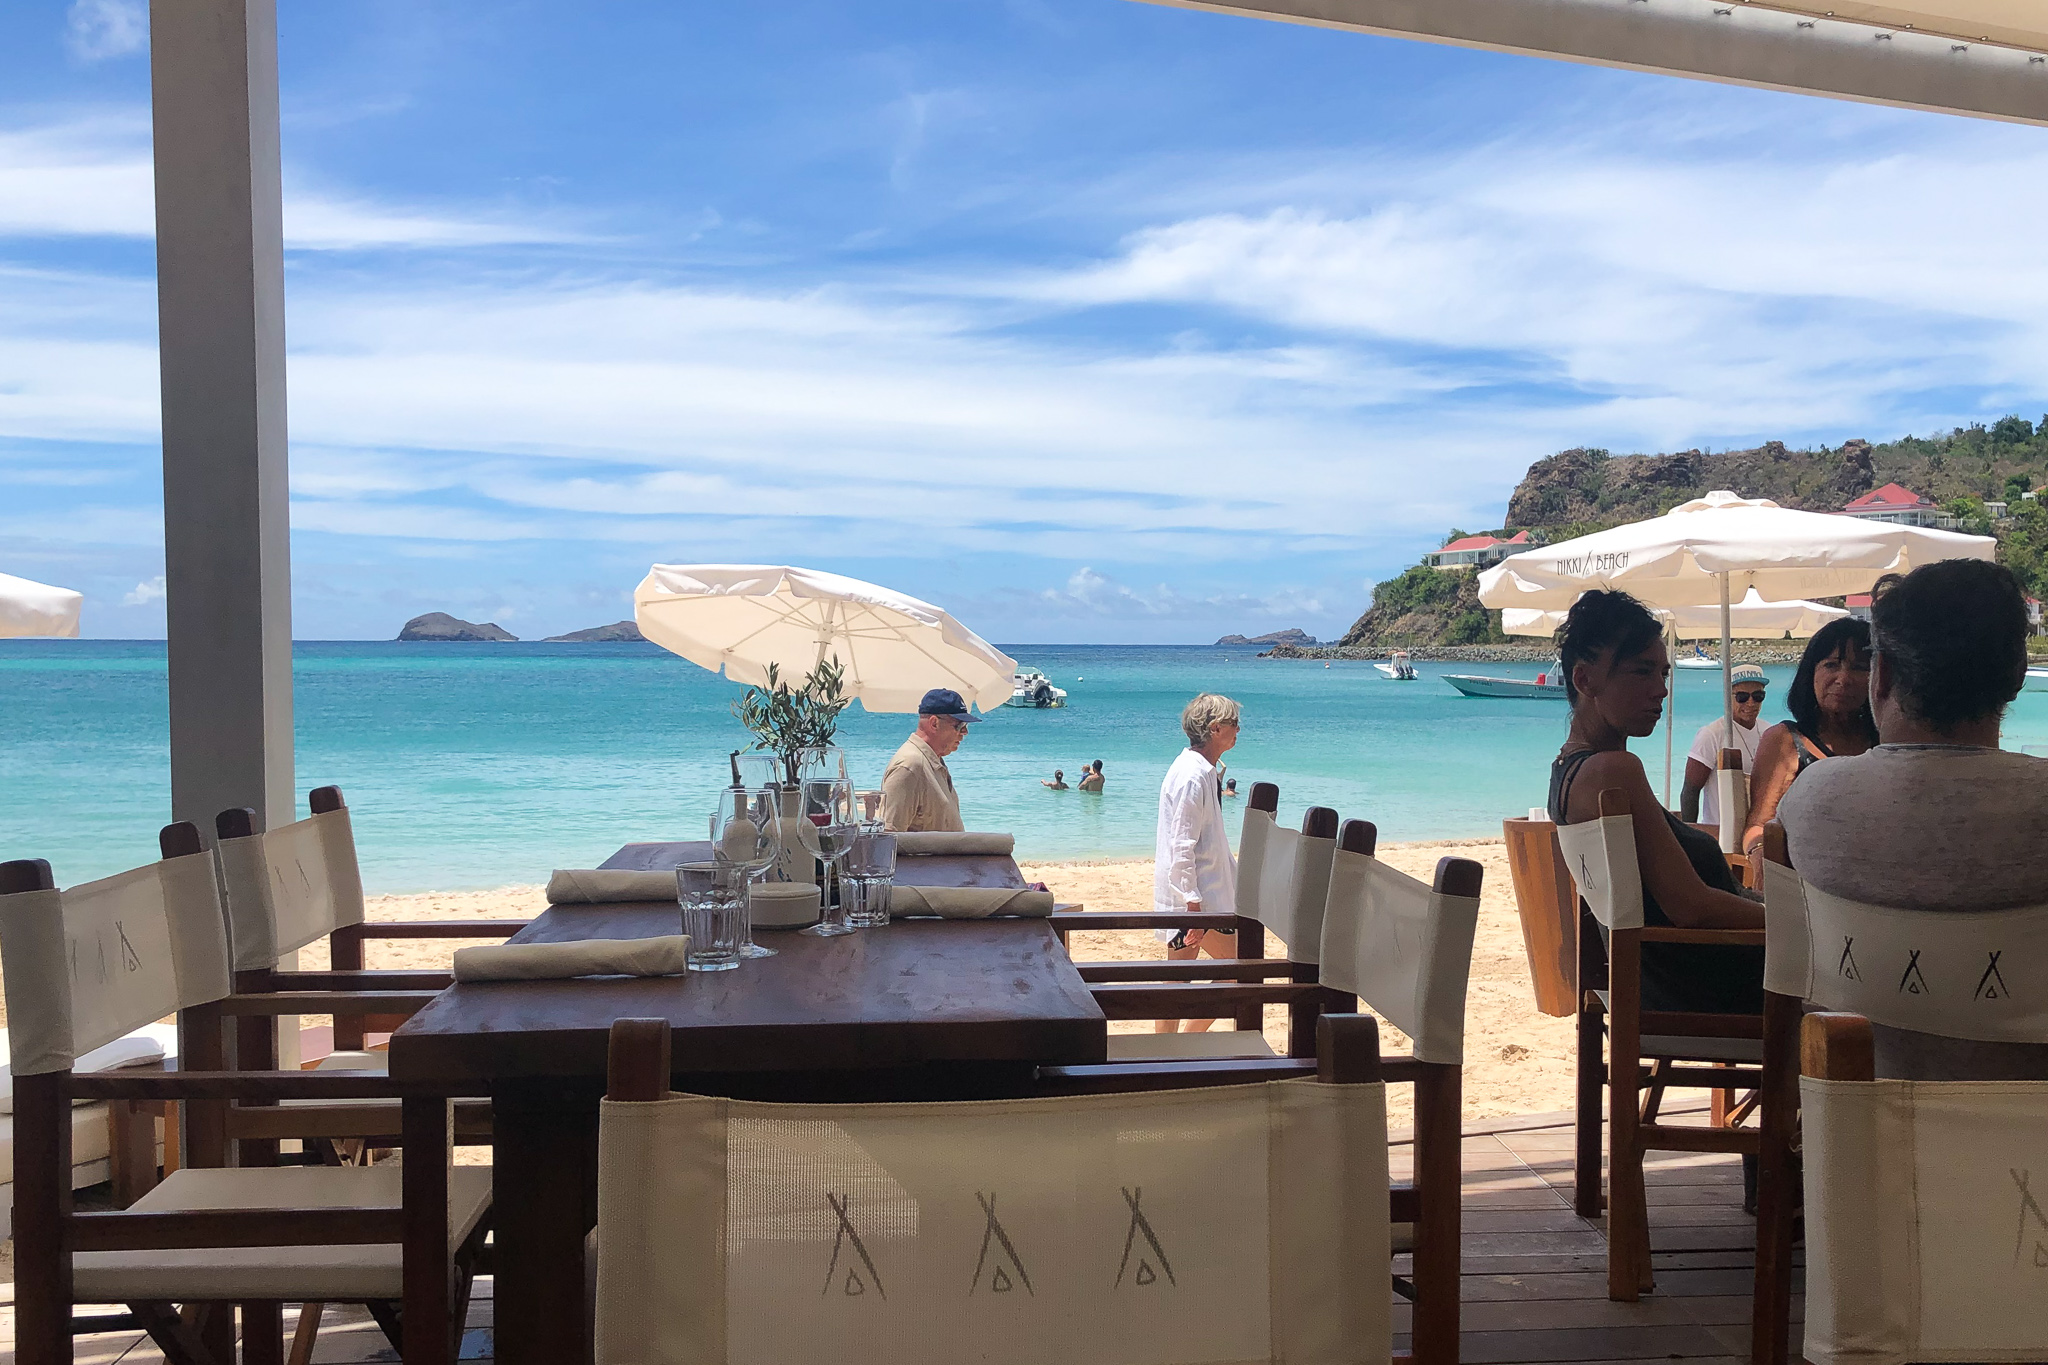 Lunch on the water at the iconic Nikki beach club.